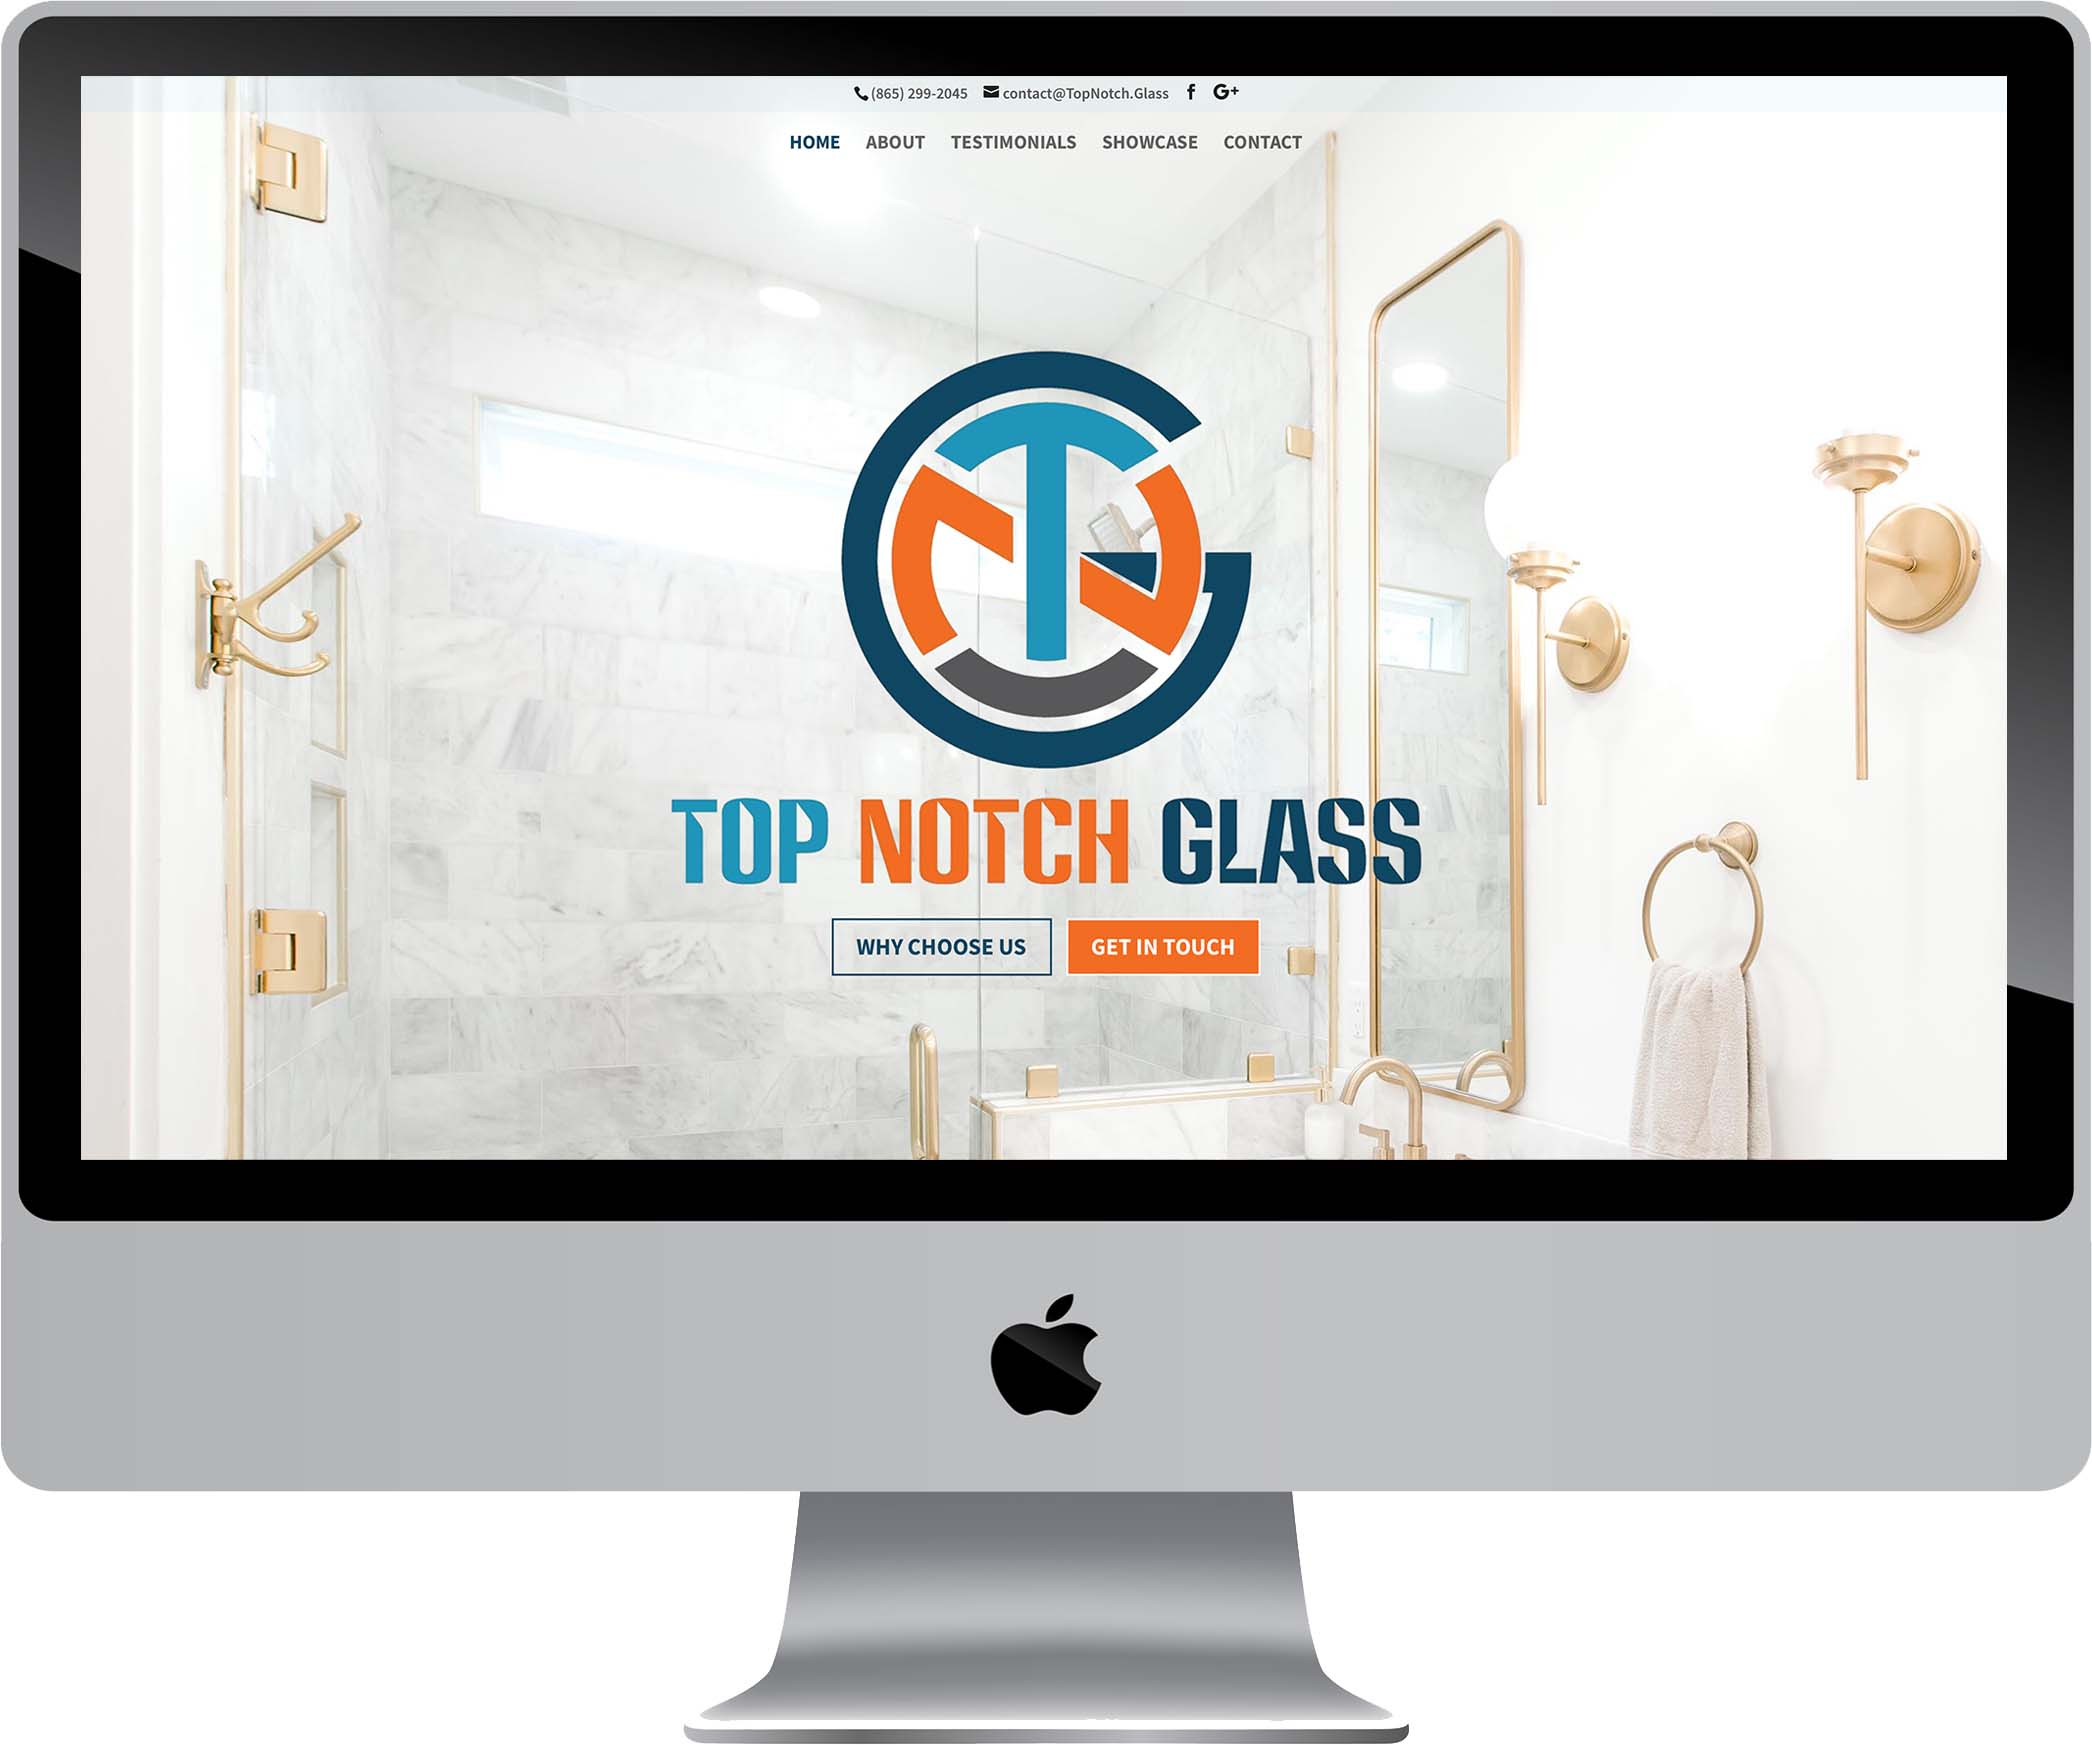 Top Notch Glass Website Design